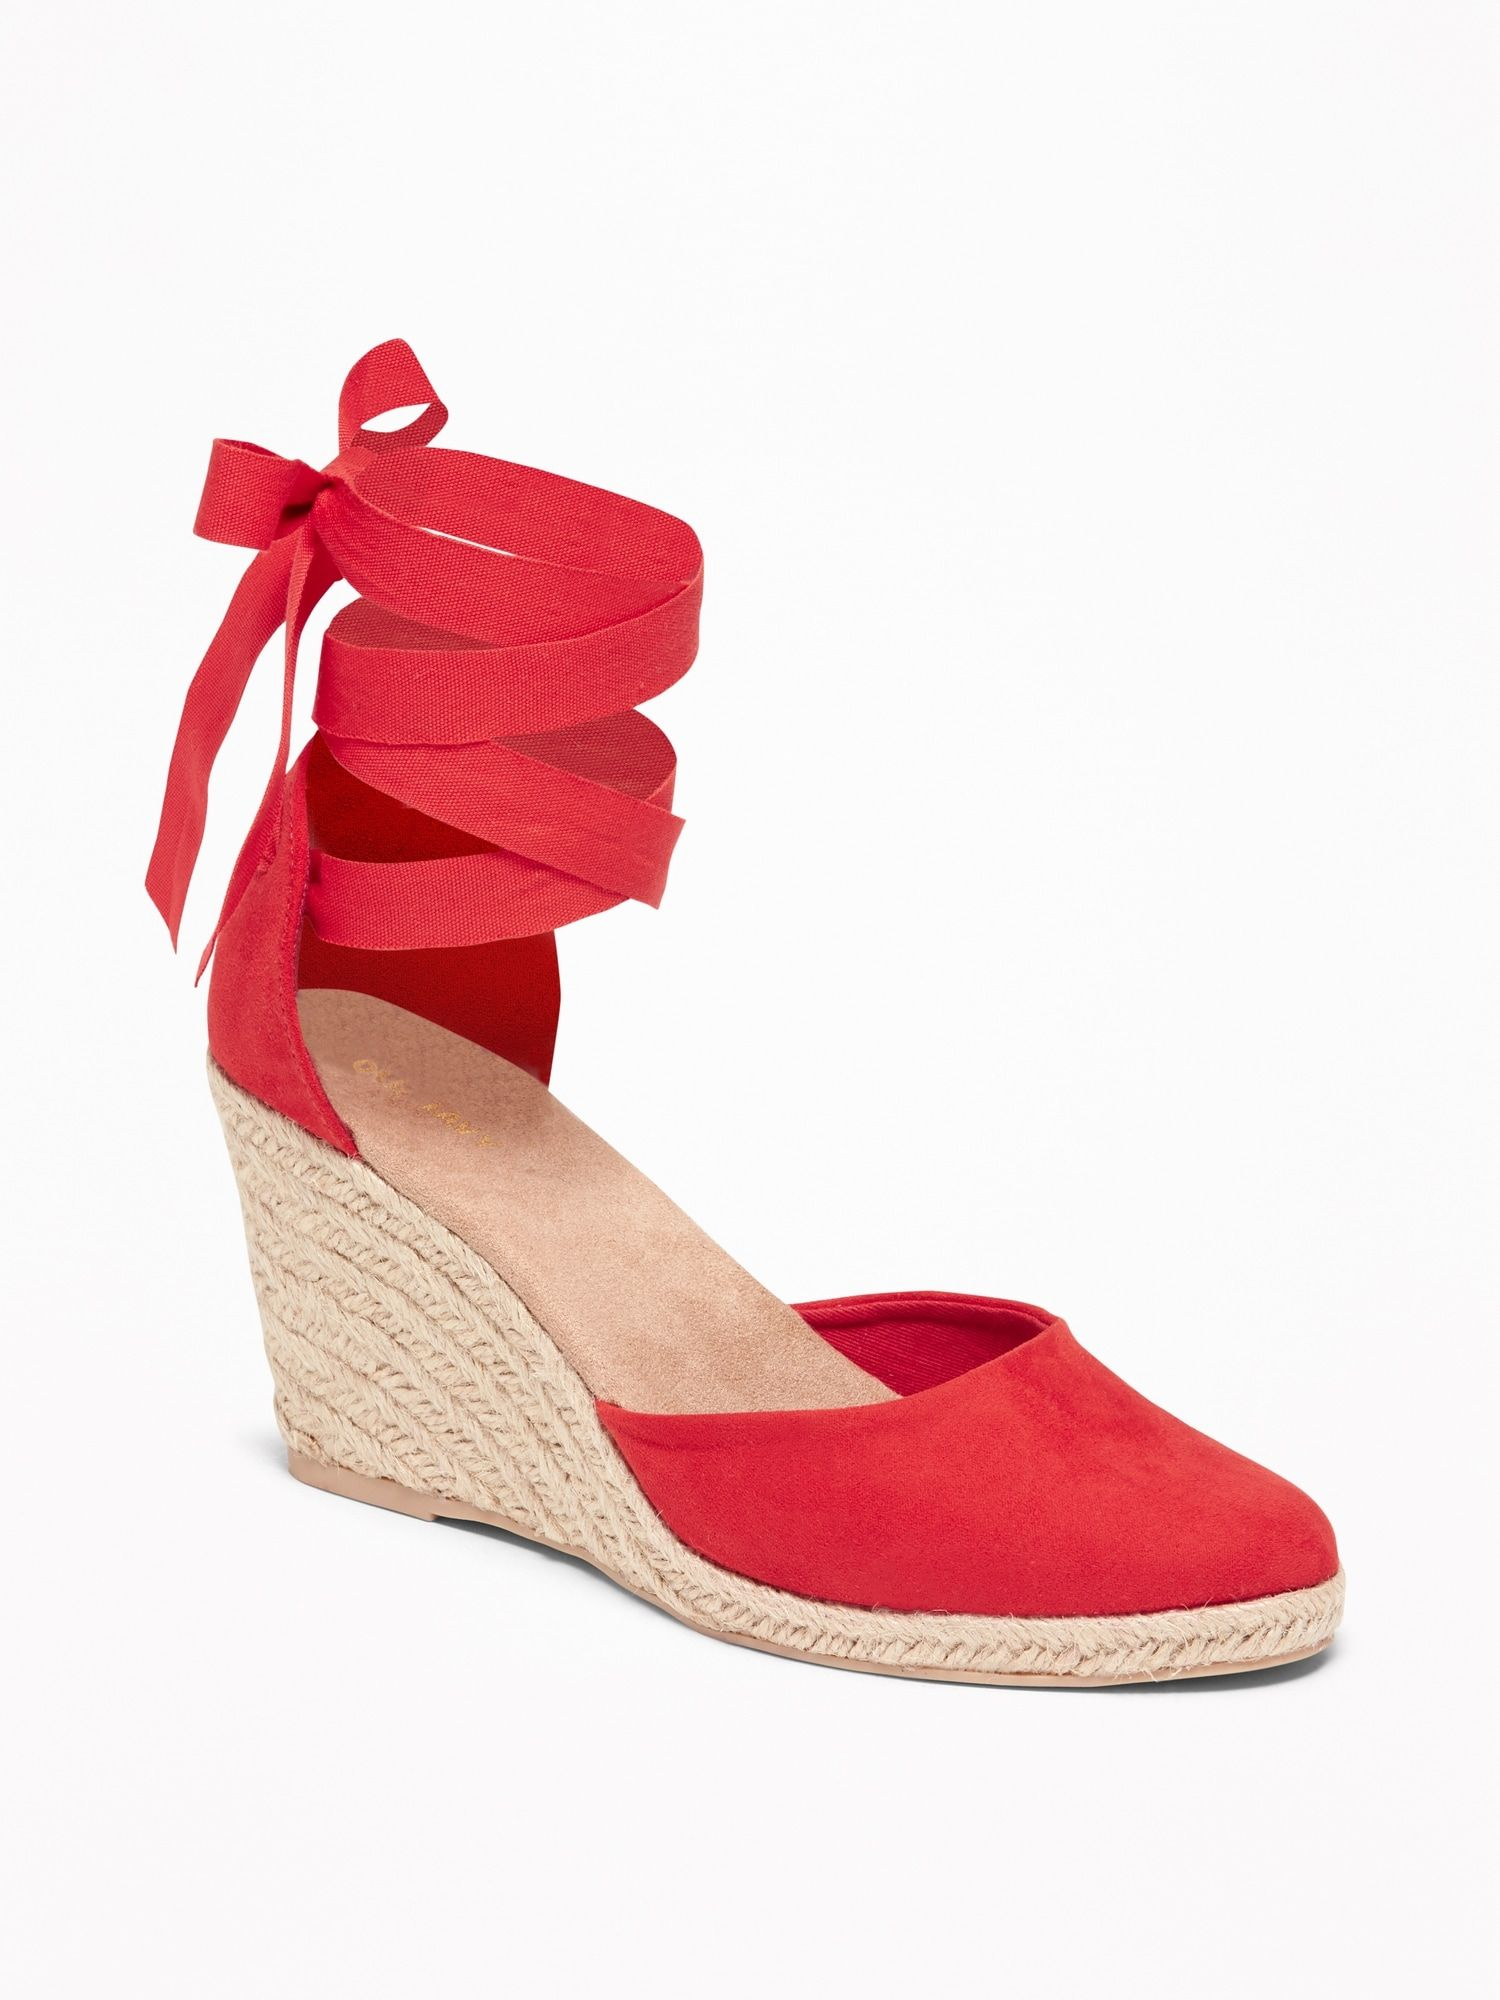 a7b6e4059a5 Faux-Suede Espadrille Wedges for Women in 2019 | Stitch Fix ...